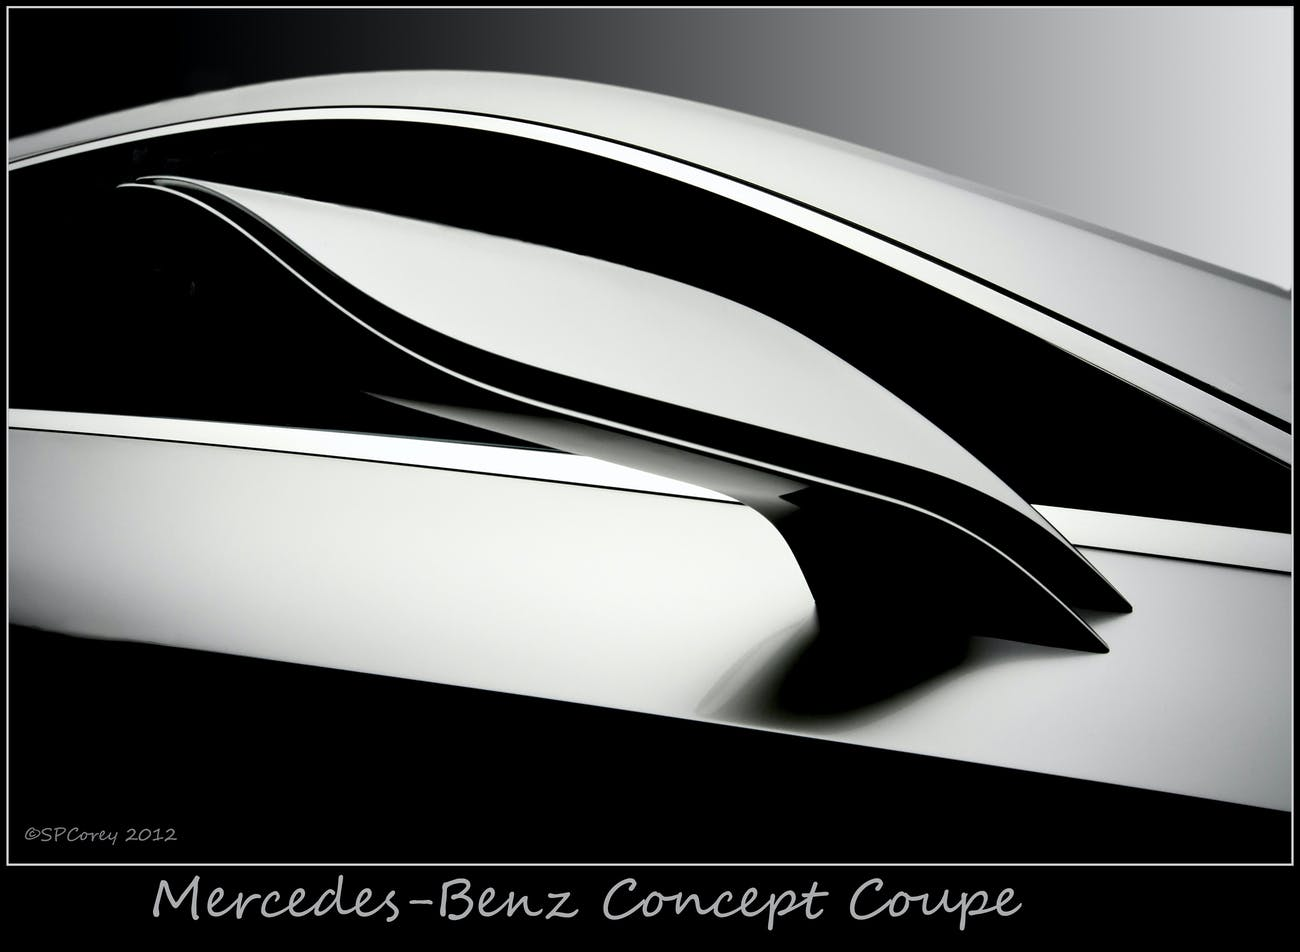 Prominent line design, even for a mirror, shows the artistic freedom available to the designers of a concept car prior to production. I must have taken 16 images just of this door mirror as an example of the beautiful lines that will, in time, replace our box shaped cars produced today. Image taken at the Pebble Beach Concours d'Elegance, 2012. Thanks for viewing. 500px.com/stevecorey